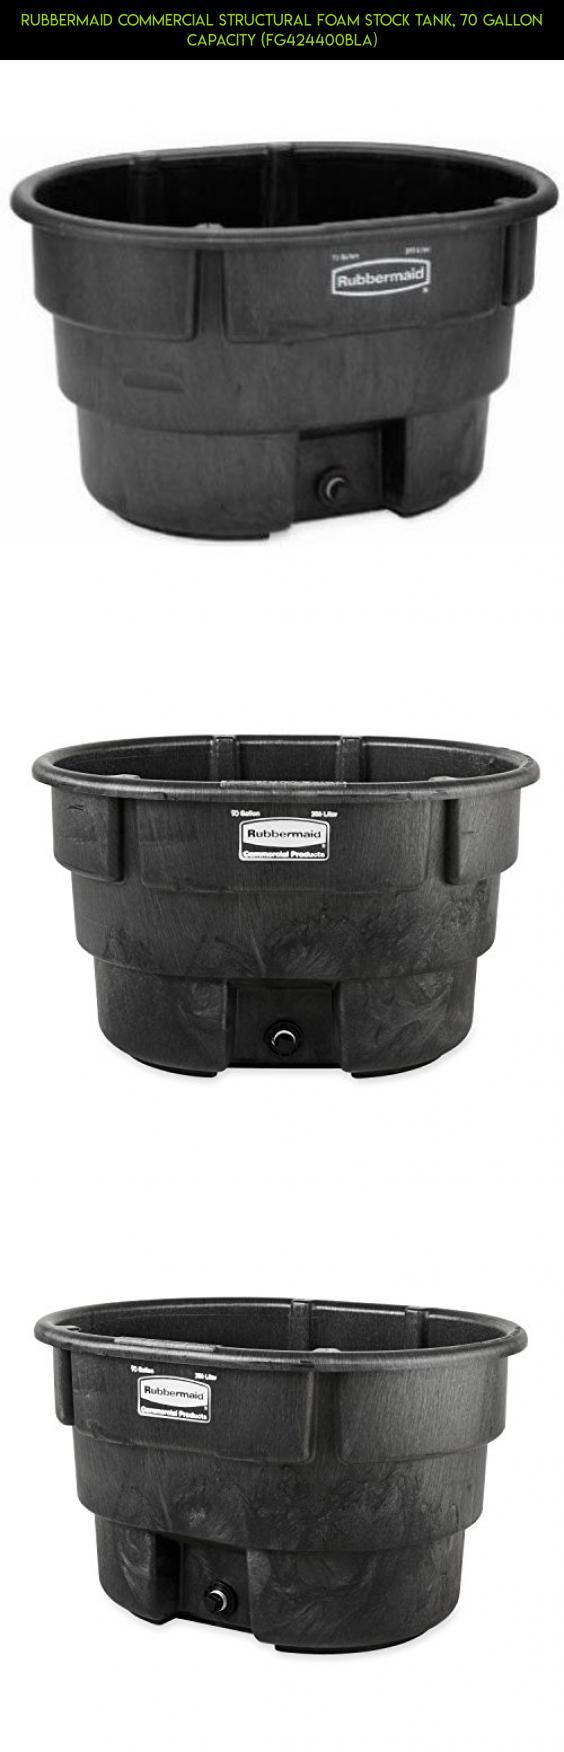 Rubbermaid Commercial Structural Foam Stock Tank, 70 Gallon Capacity (FG424400BLA) #plans #camera #gallon #parts #drone #70 #storage #technology #racing #kit #products #tech #fpv #shopping #gadgets